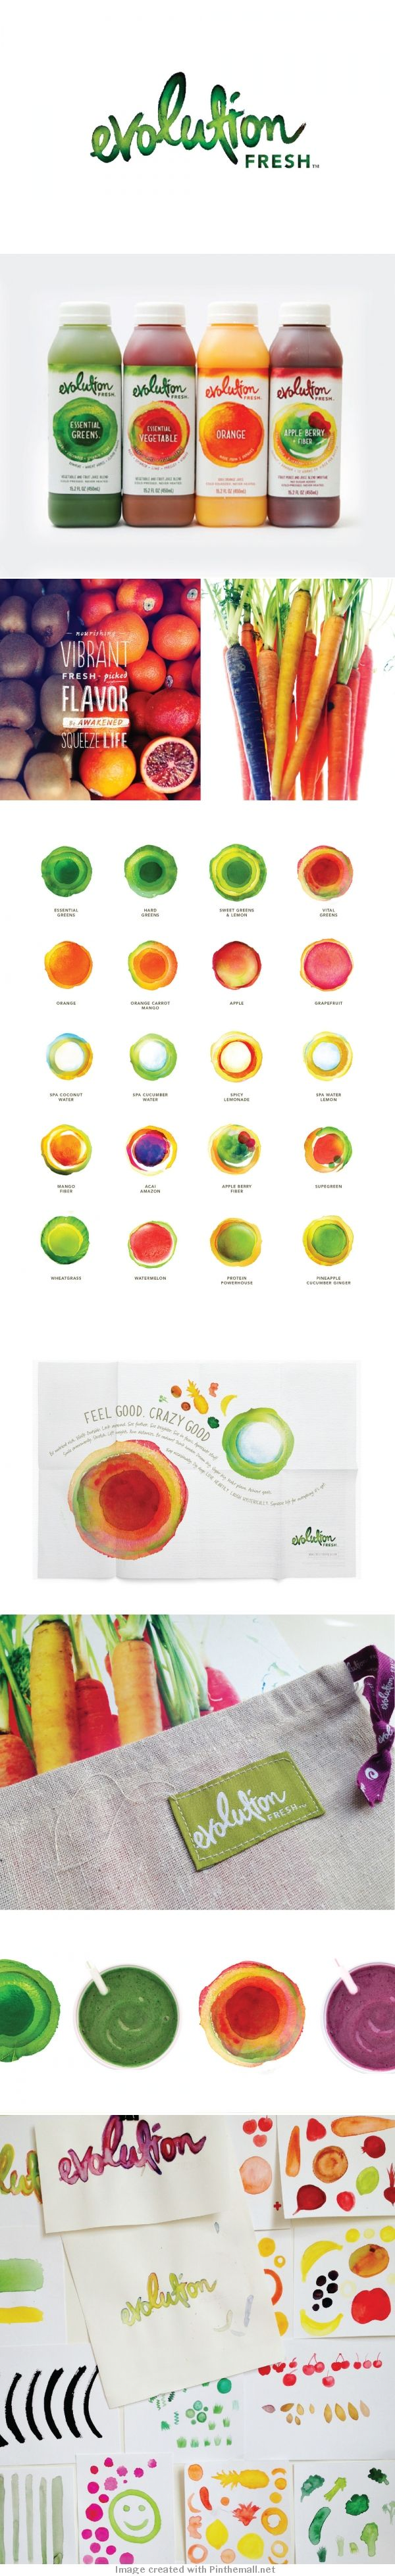 Evolution Fresh yummy fresh #juice #identity #packaging #branding PD